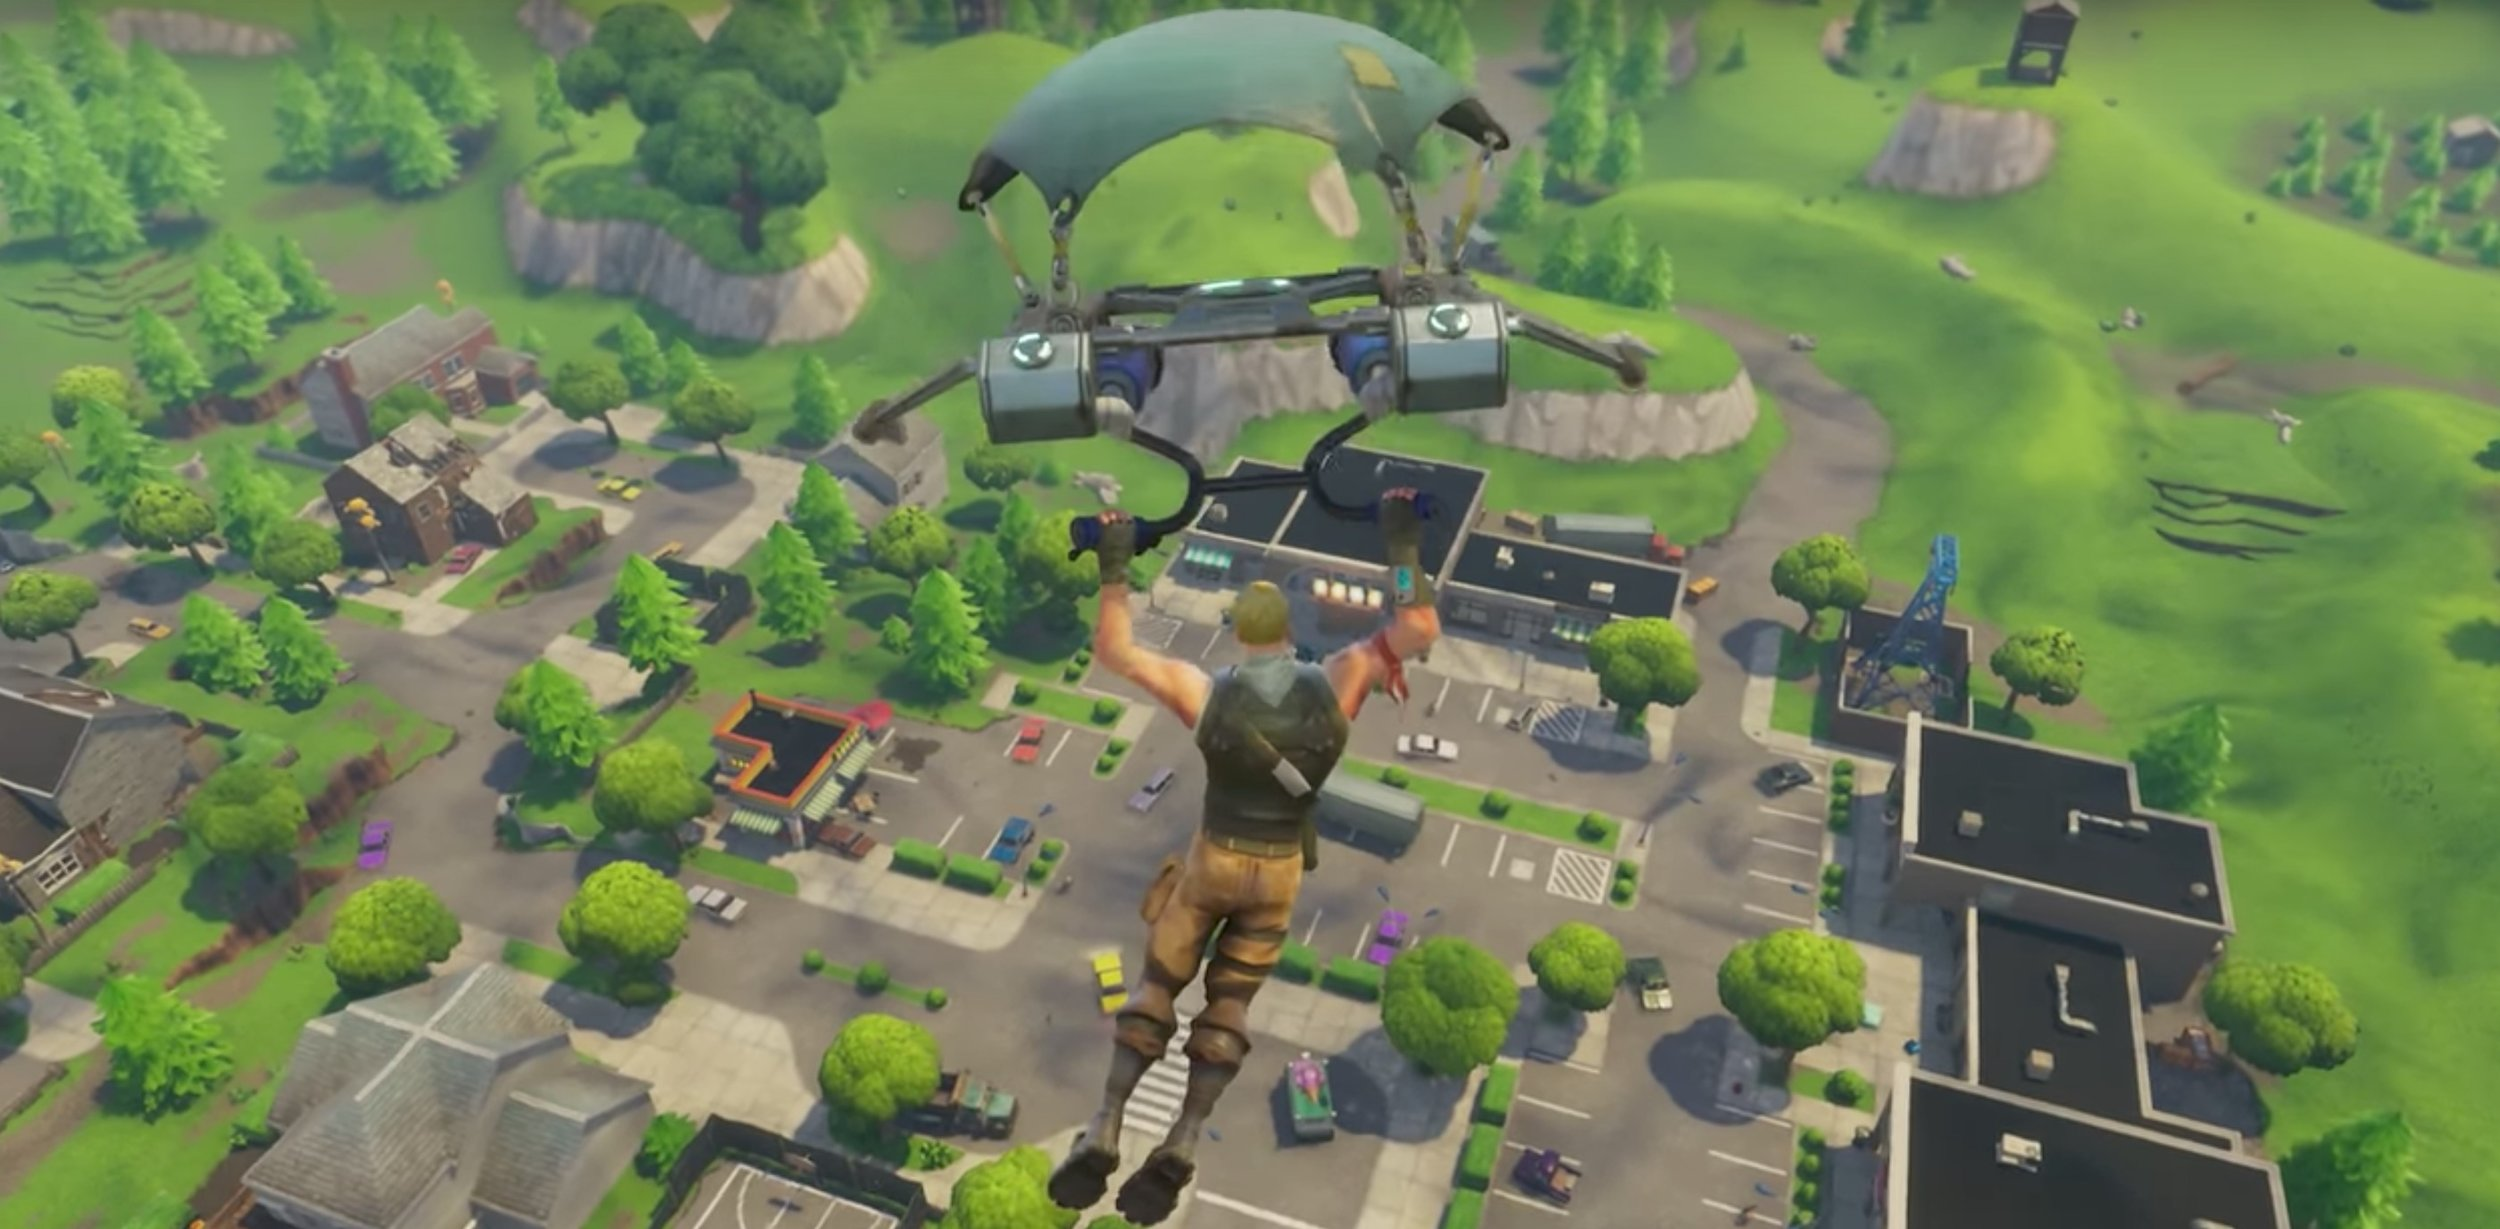 Epic Games to Release Fortnite: Battle Royale for Free on